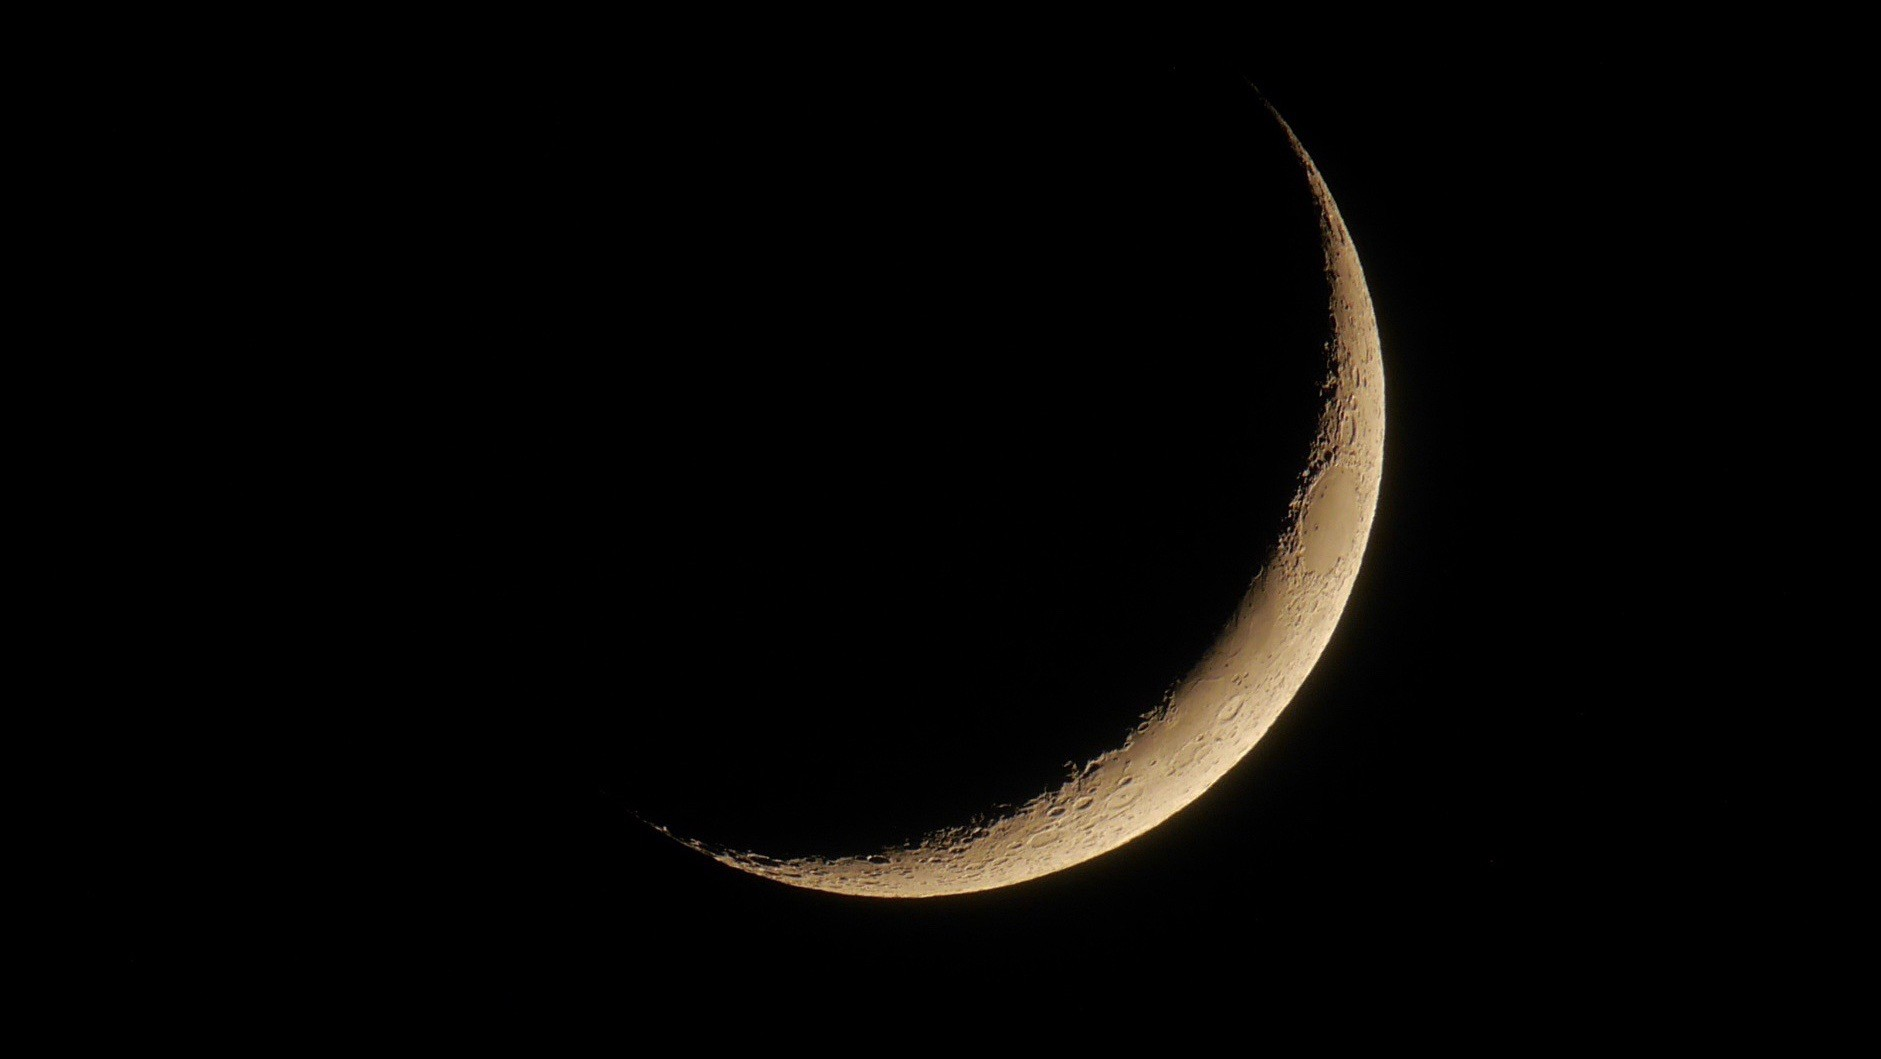 A thin young waxing moon